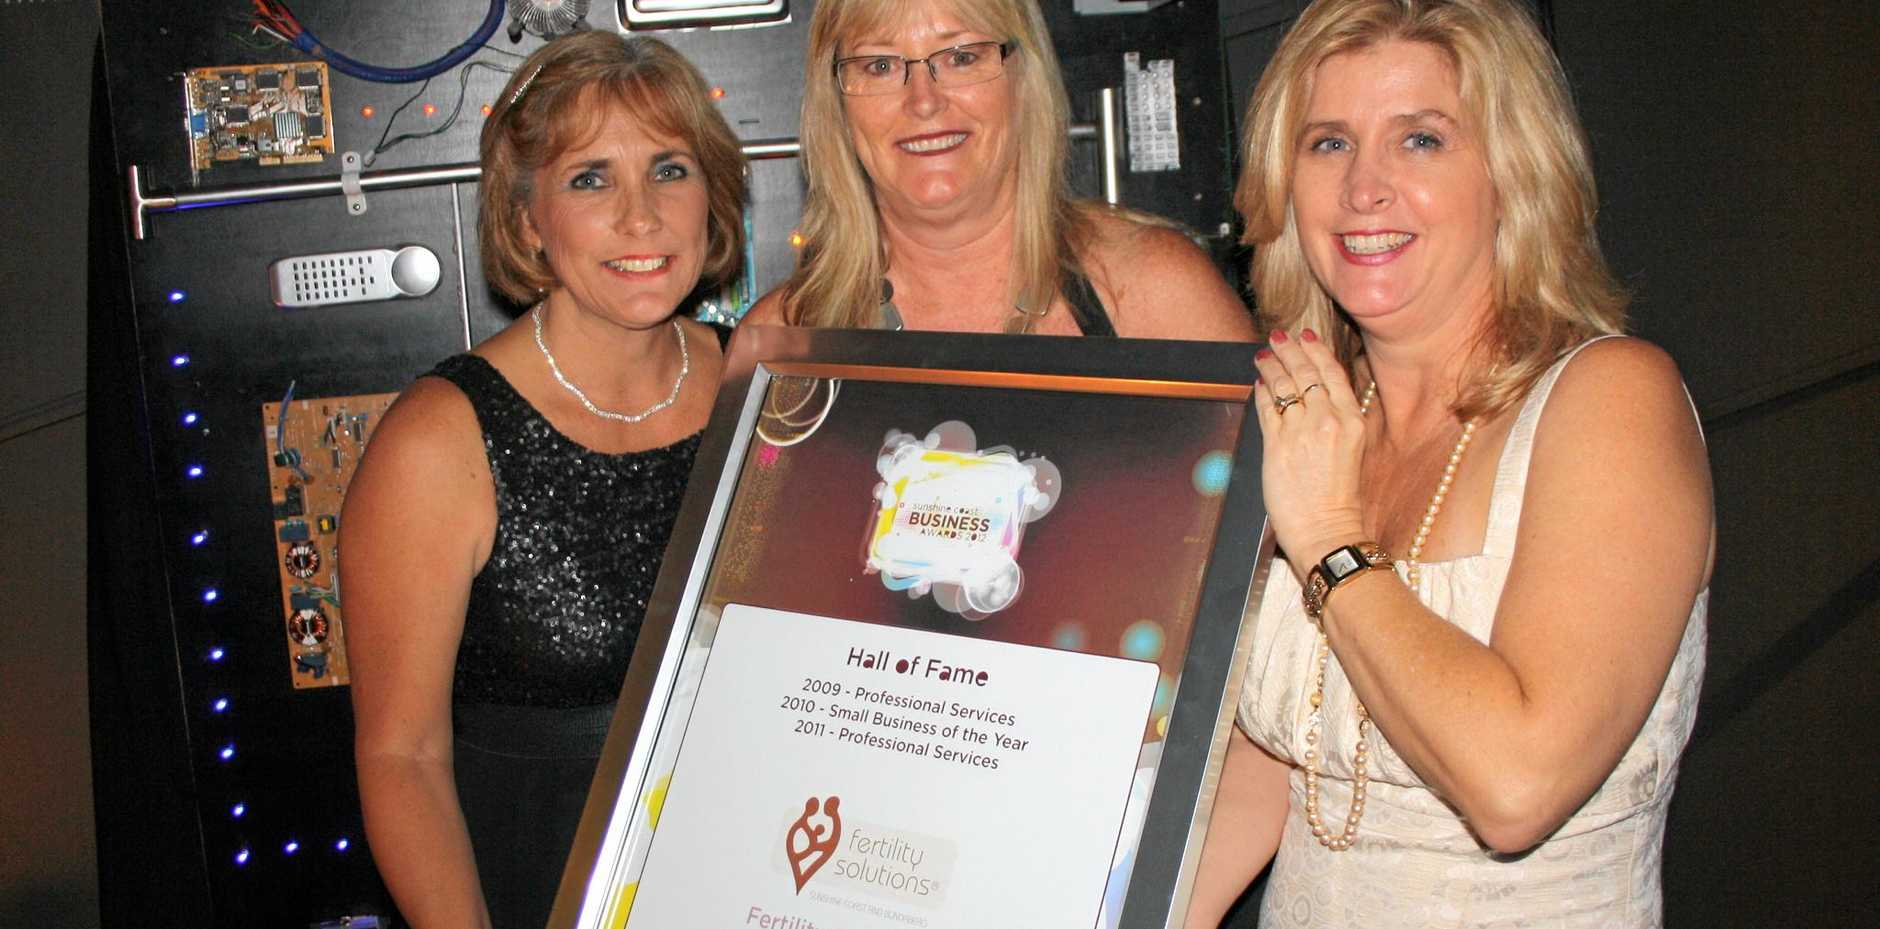 Hall of Fame: Fertility Solutions, Donna Edwards, left, Denise Donati and Kim De Marco were inducted into the hall of fame for the Sunshine Coast Business Awards.